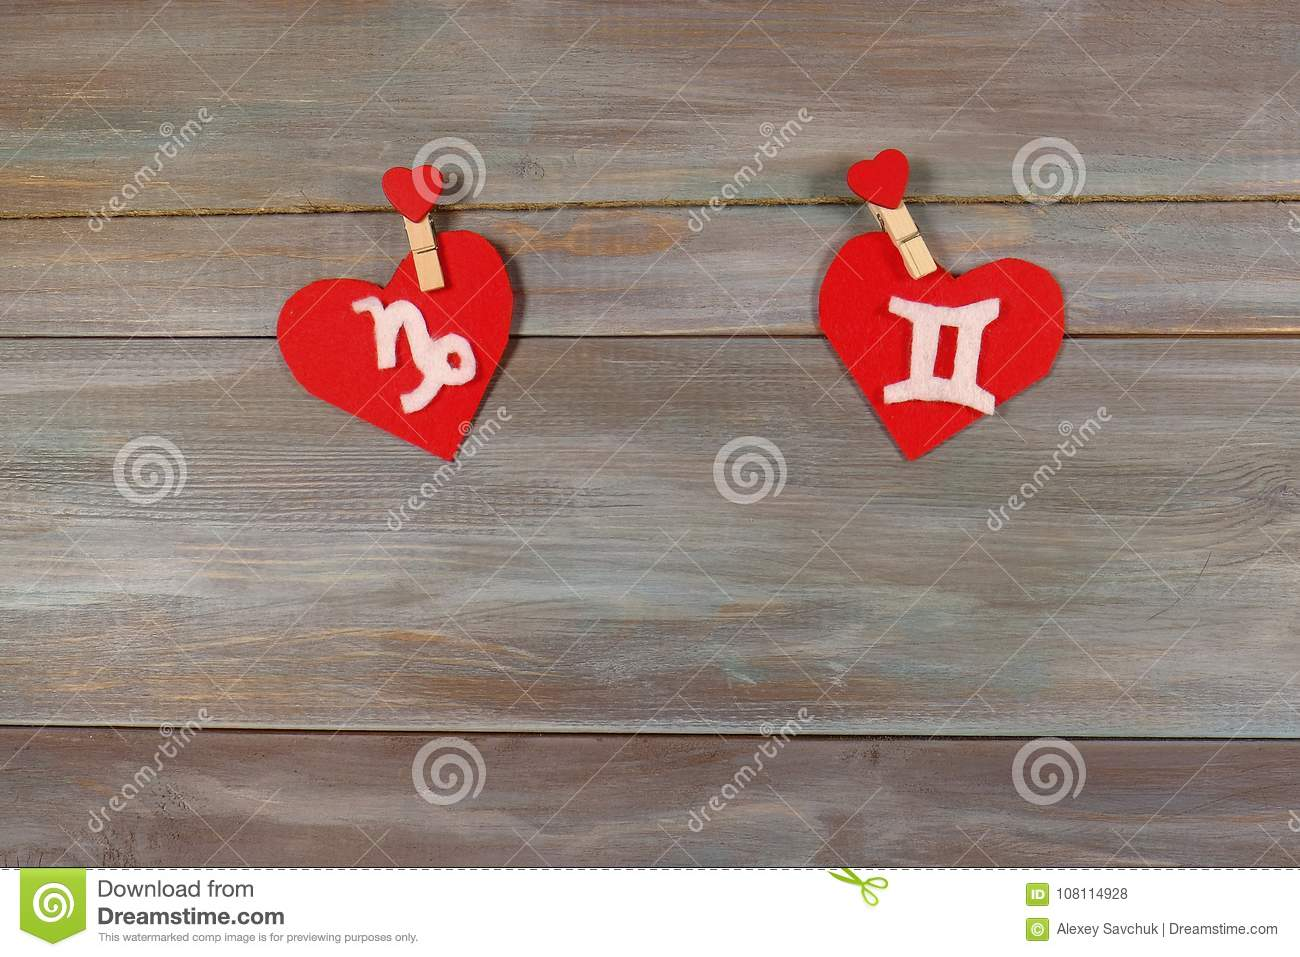 Capricorn and twins. signs of the zodiac and heart. wooden backg